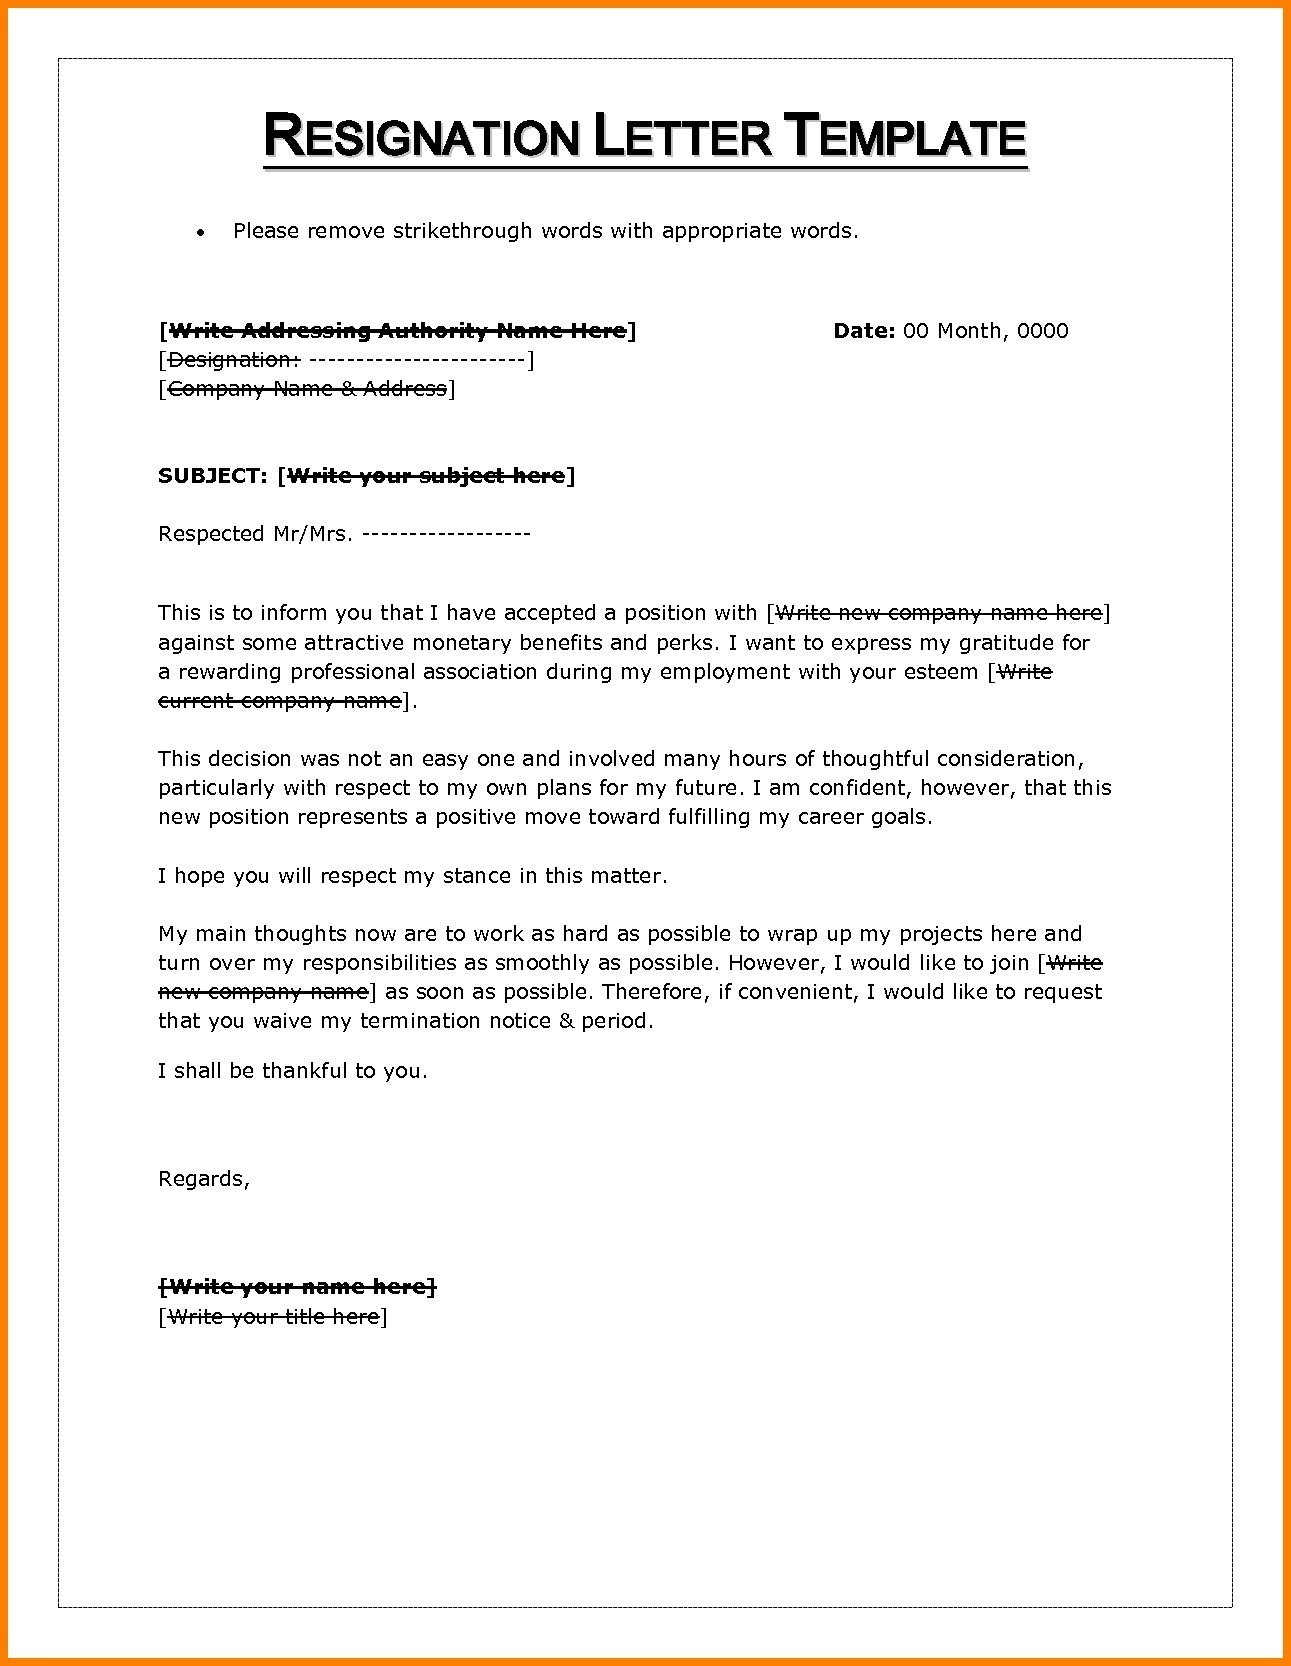 Resignation Letter Template Word - Resignation Letter Sample Notice Period Waiver New Resignation